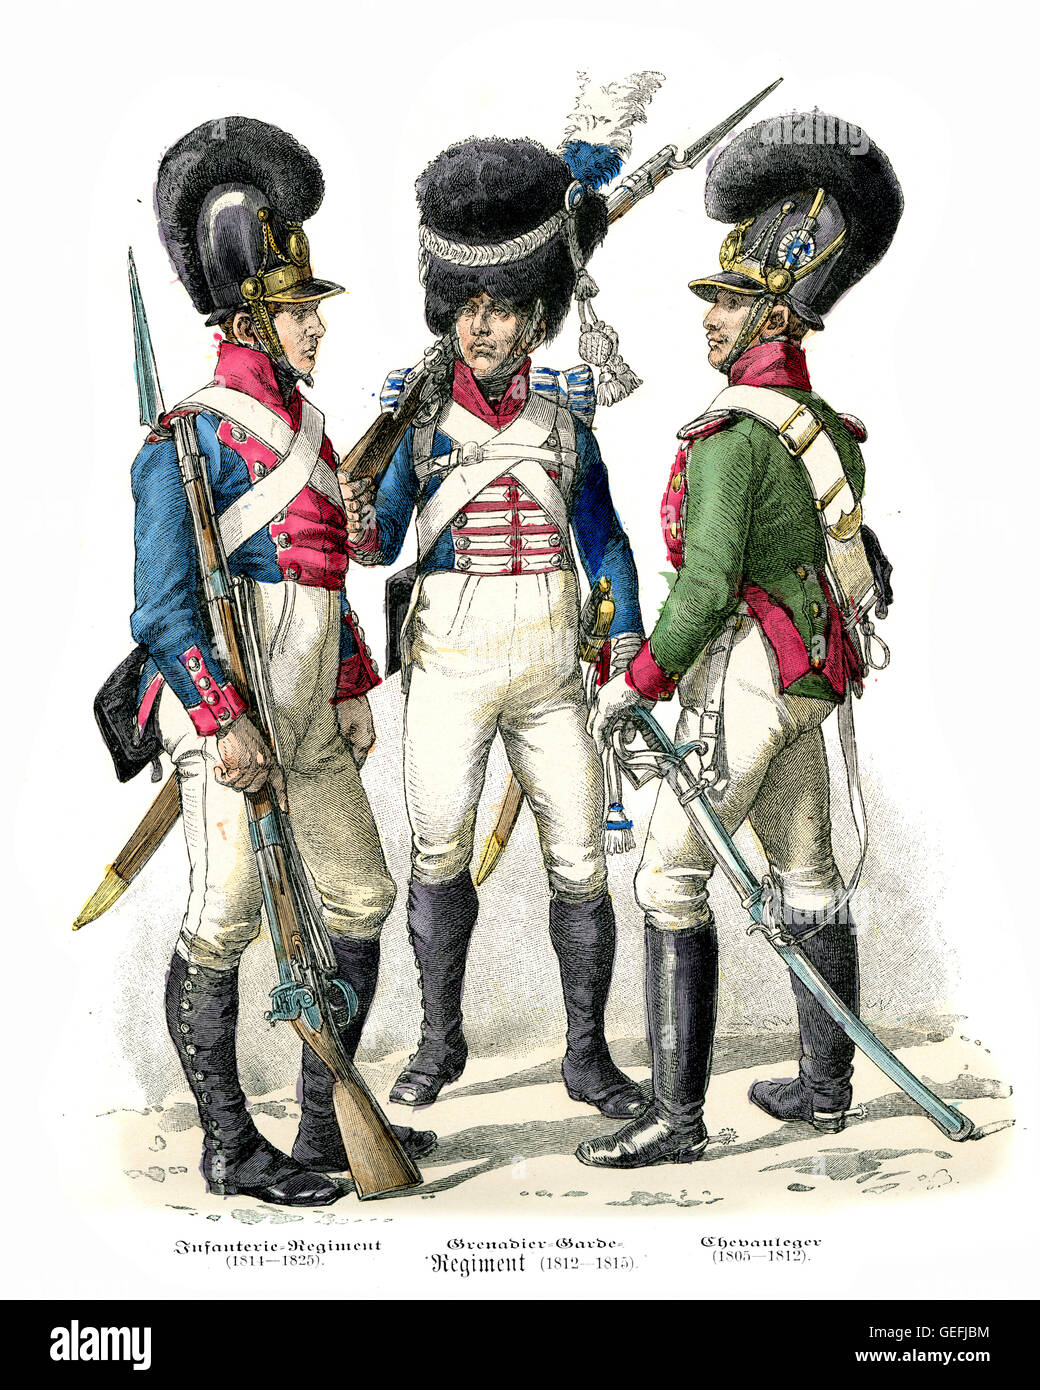 Military uniforms of Bavarian Soldiers early 19th Century. Infantry, Grenadier Guard, Chevau-leger - Stock Image